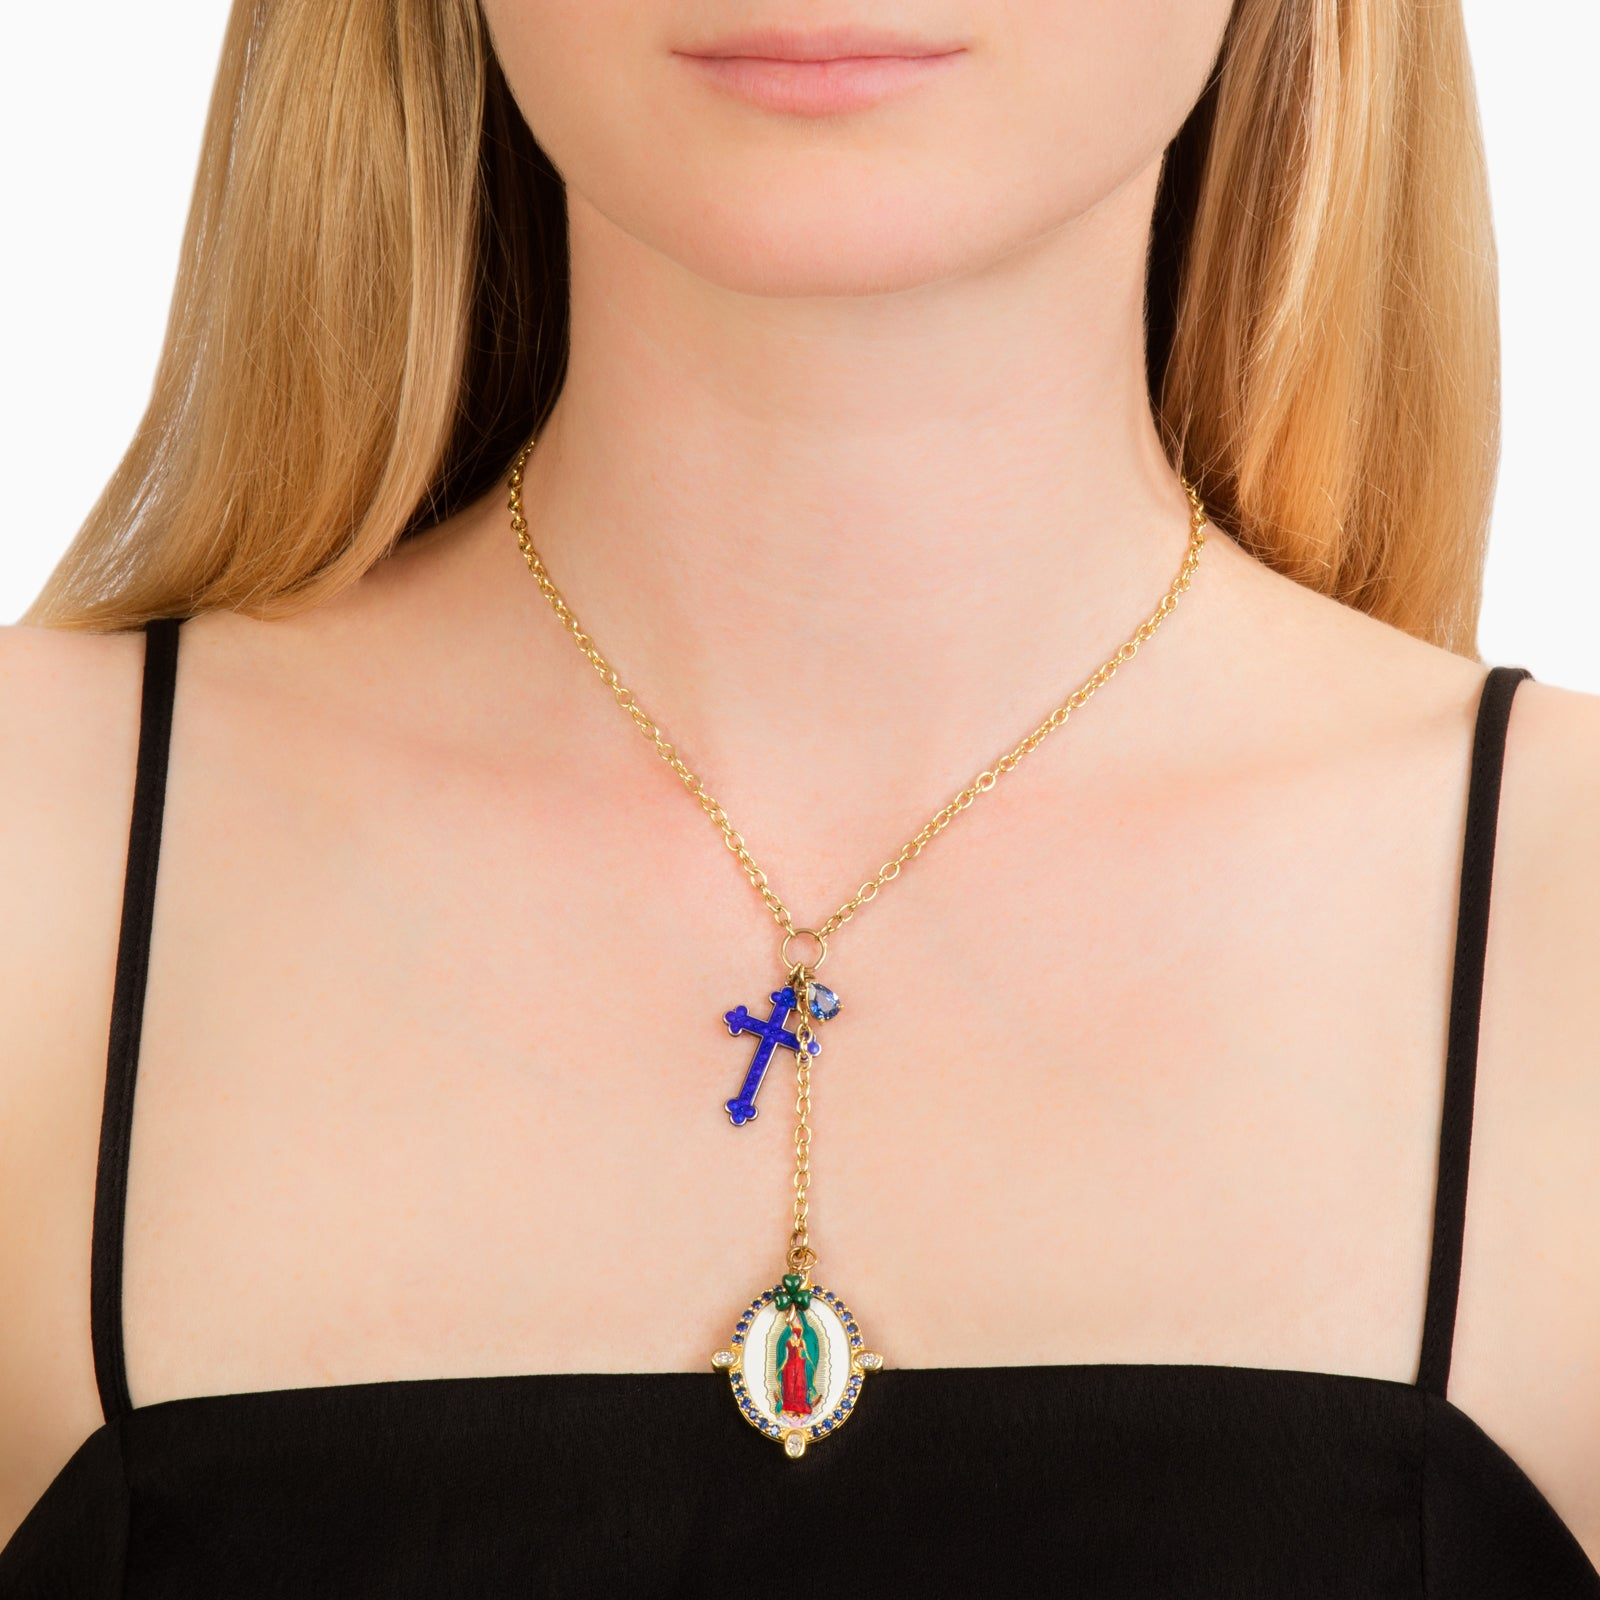 Colette Medallion Necklace - Blue Cross - Necklaces - Broken English Jewelry